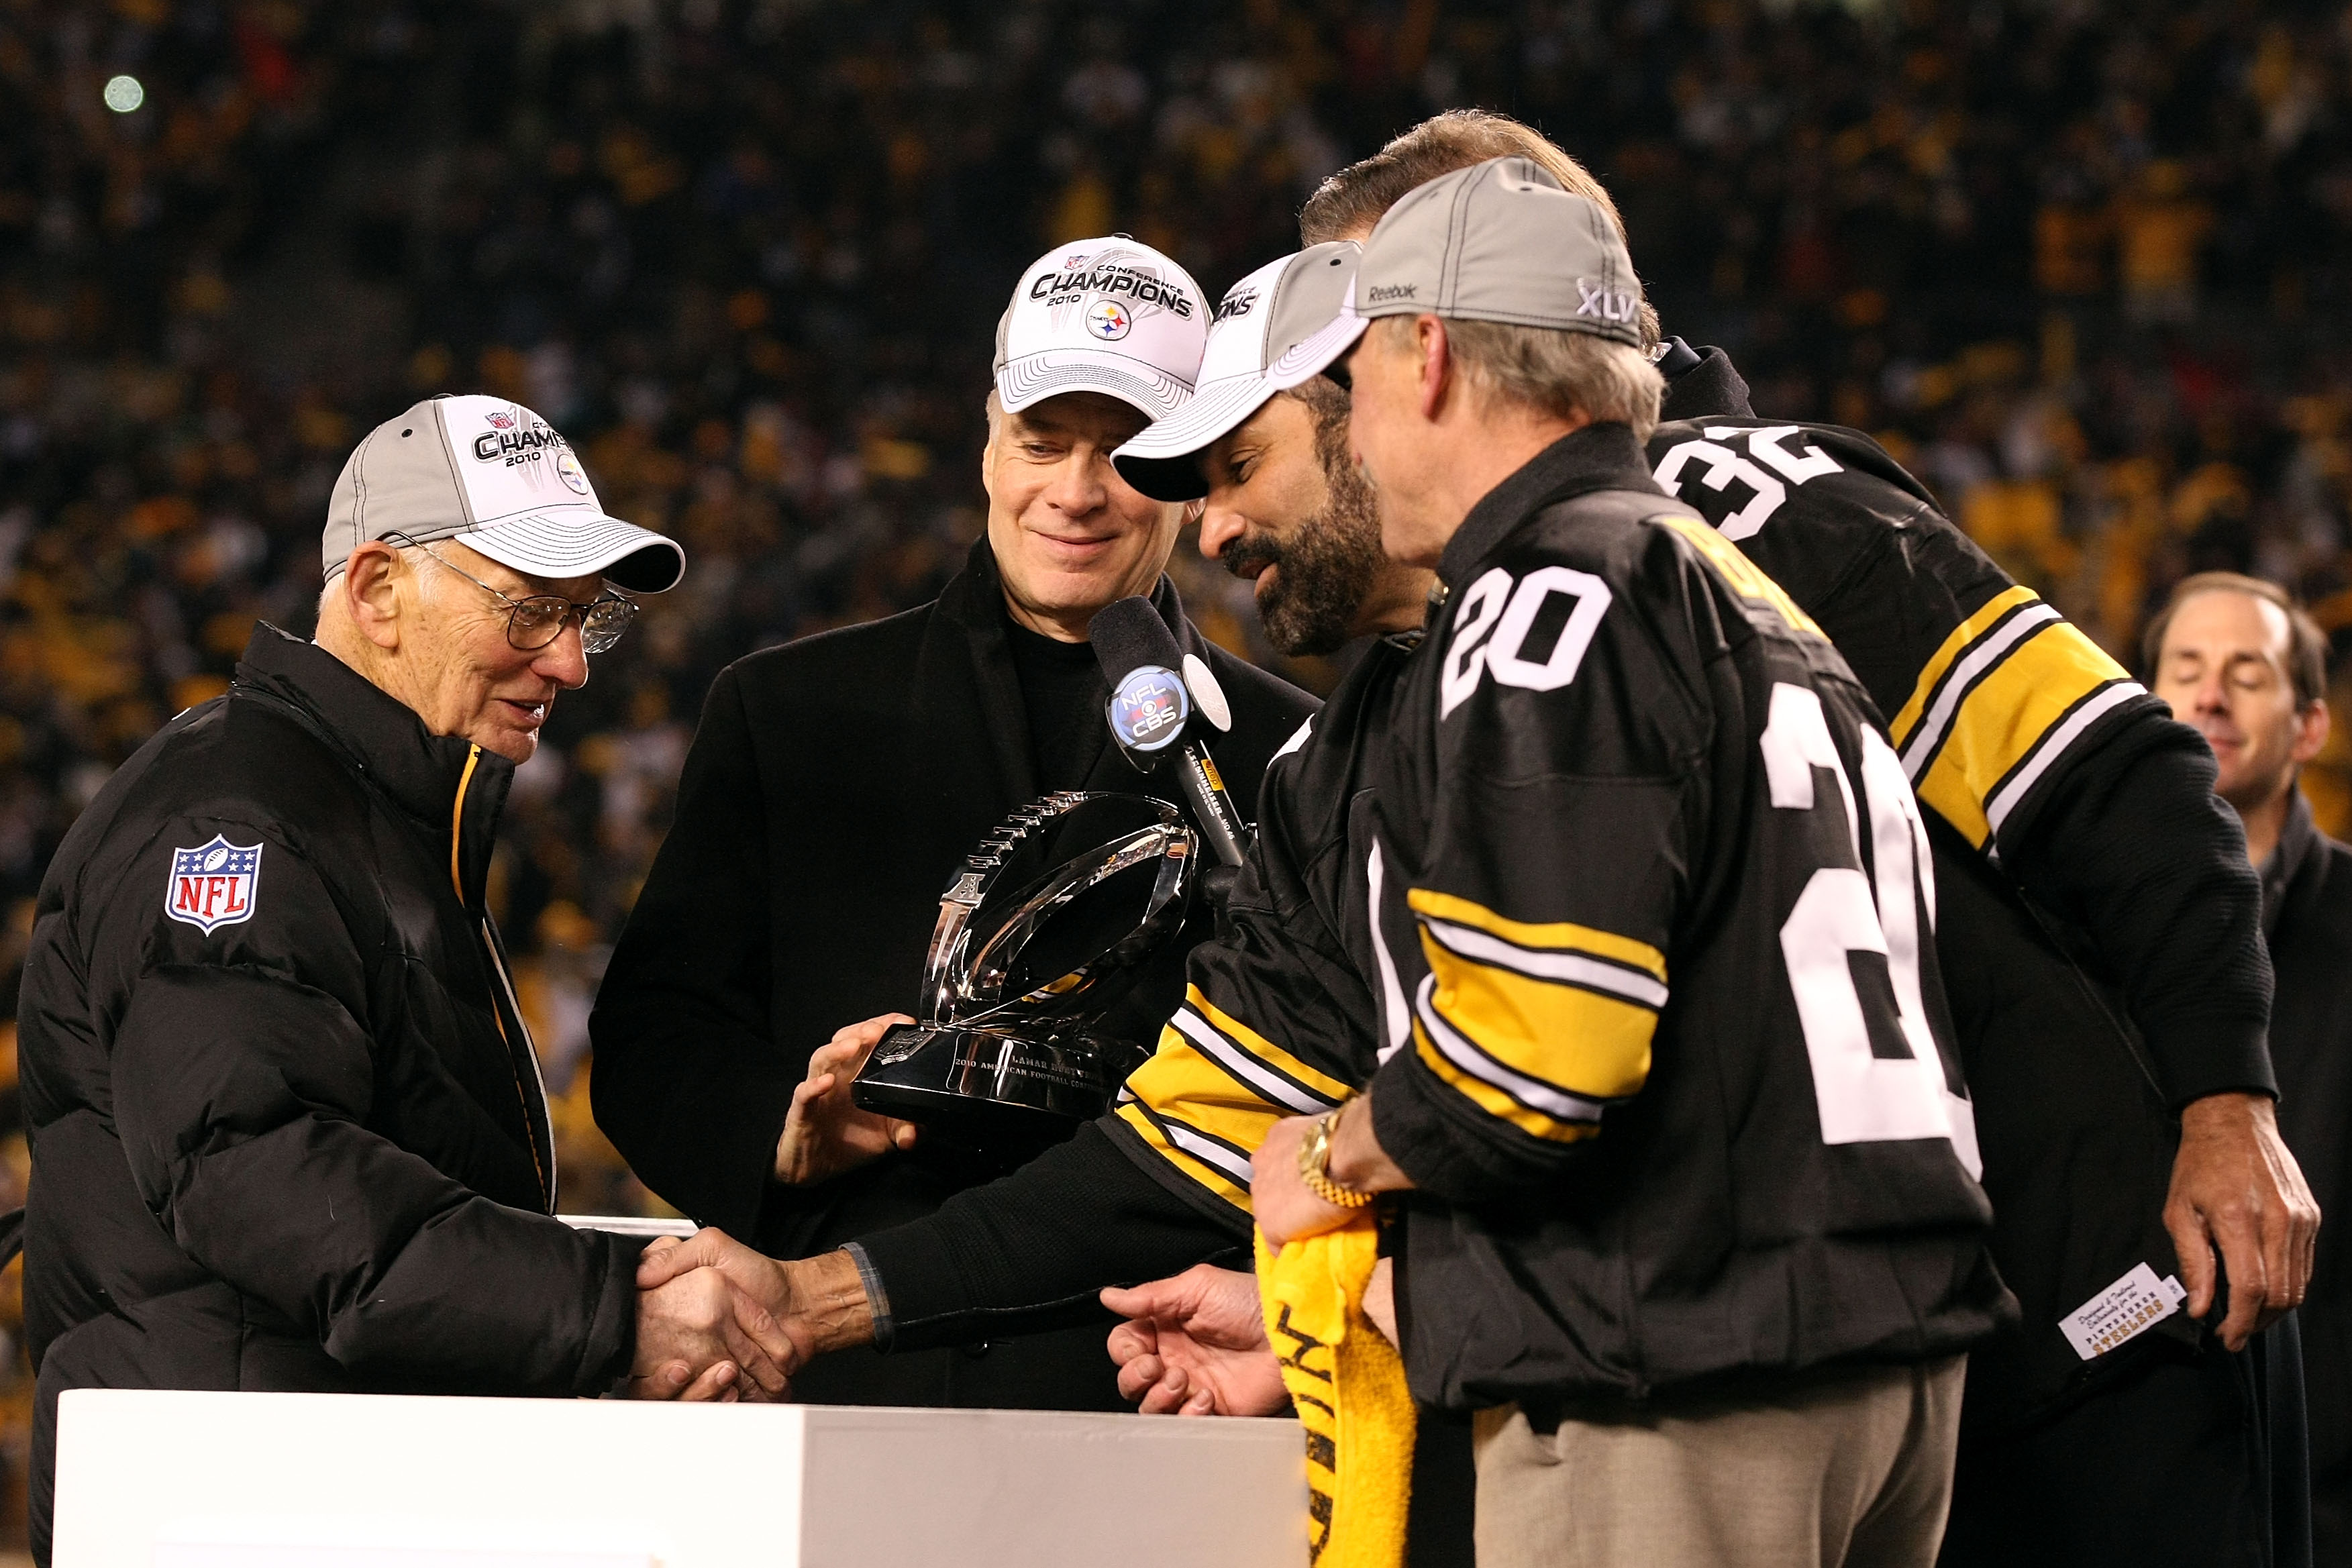 PITTSBURGH, PA - JANUARY 23:  Owner Dan Rooney (L) and Team president Art Rooney II (2ndL) of the Pittsburgh Steelers recieve the Lamar Hunt Trophy from former Steelers' players Franco Harris and Rocky Bleier (R) after their 24 to 19 win over the New York